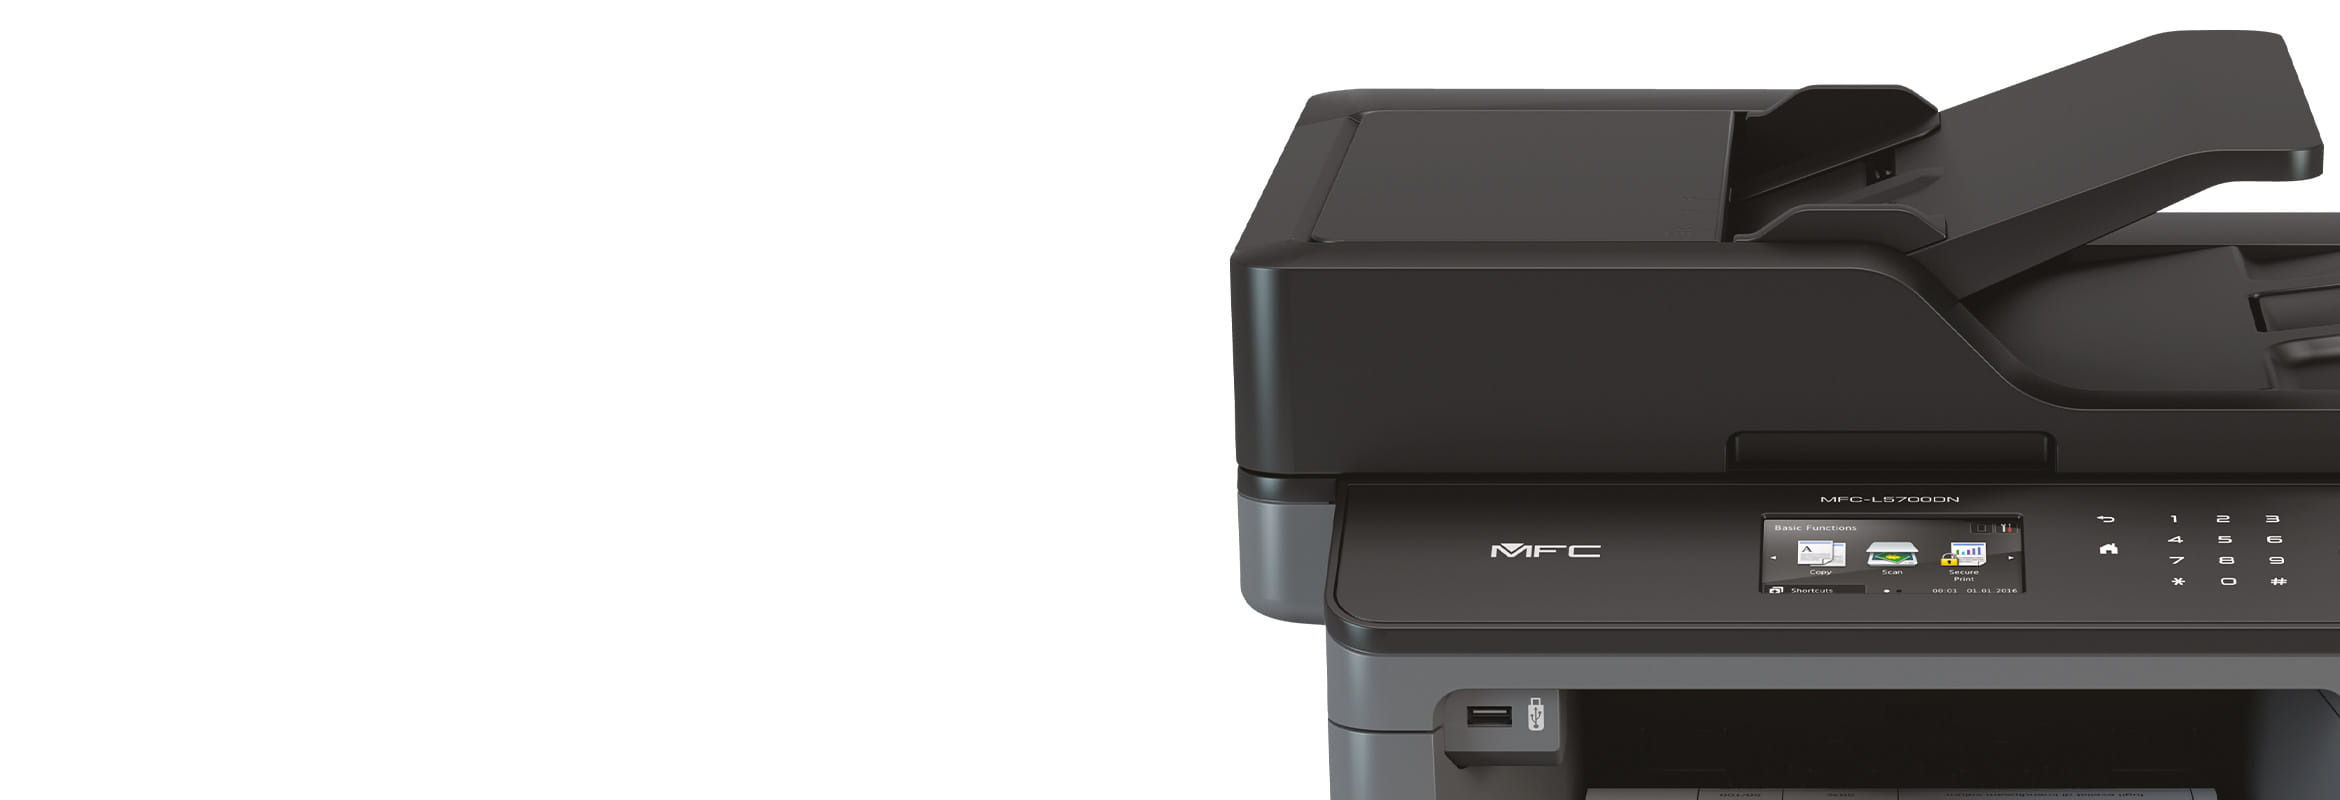 Mono-laser-printer-closeup